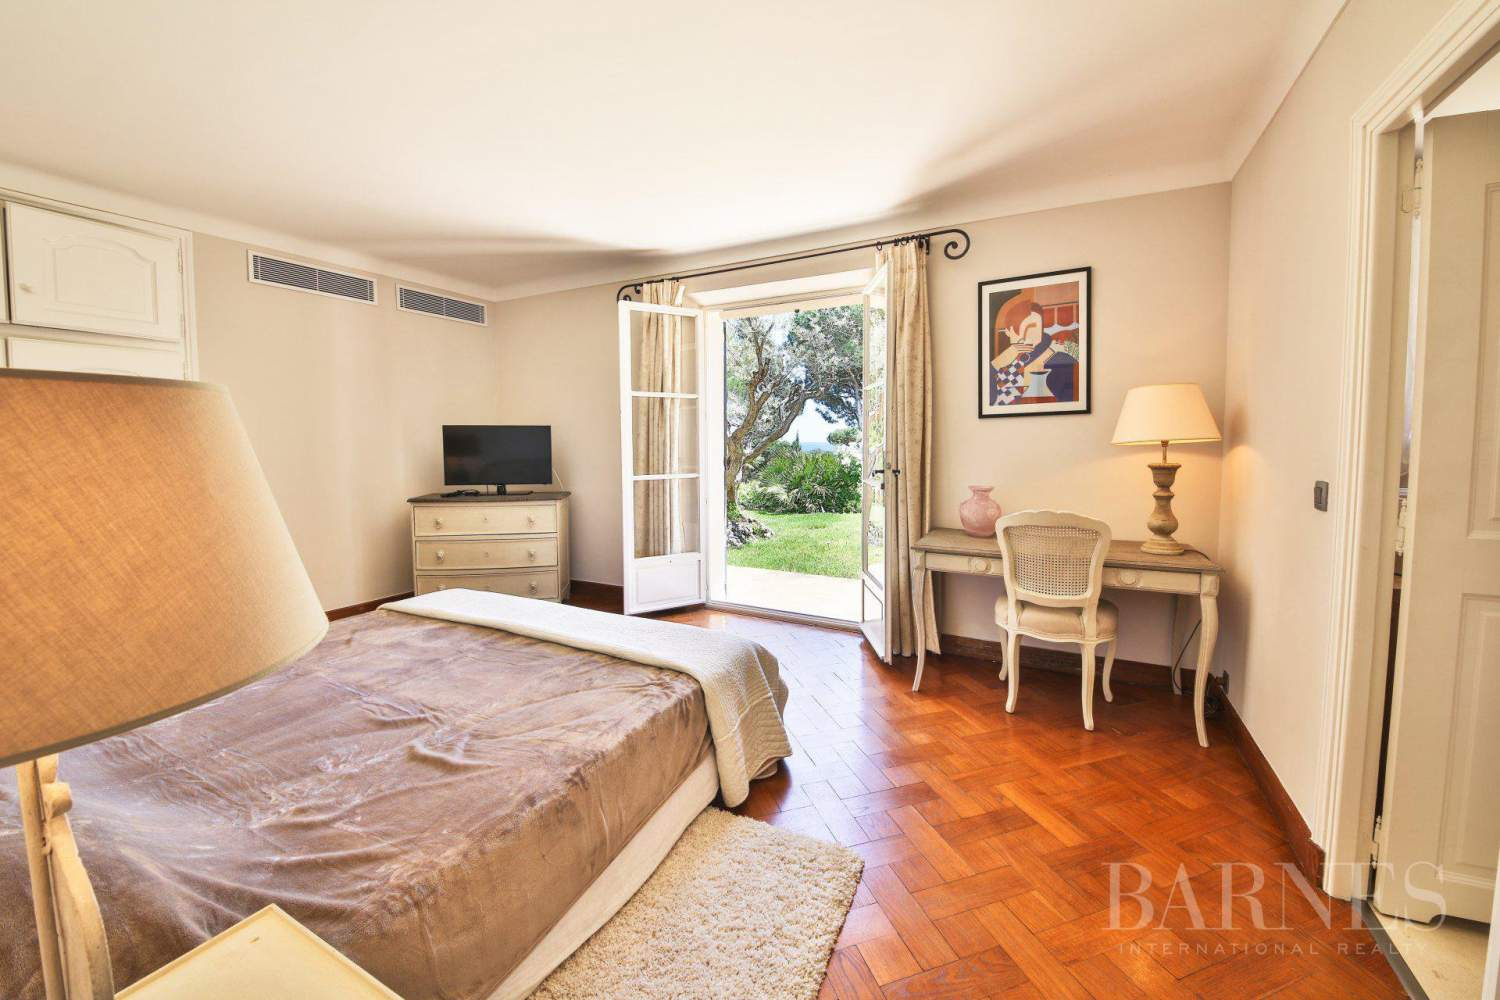 RAMATUELLE - Sea view - 6 bedrooms - Heated pool picture 18